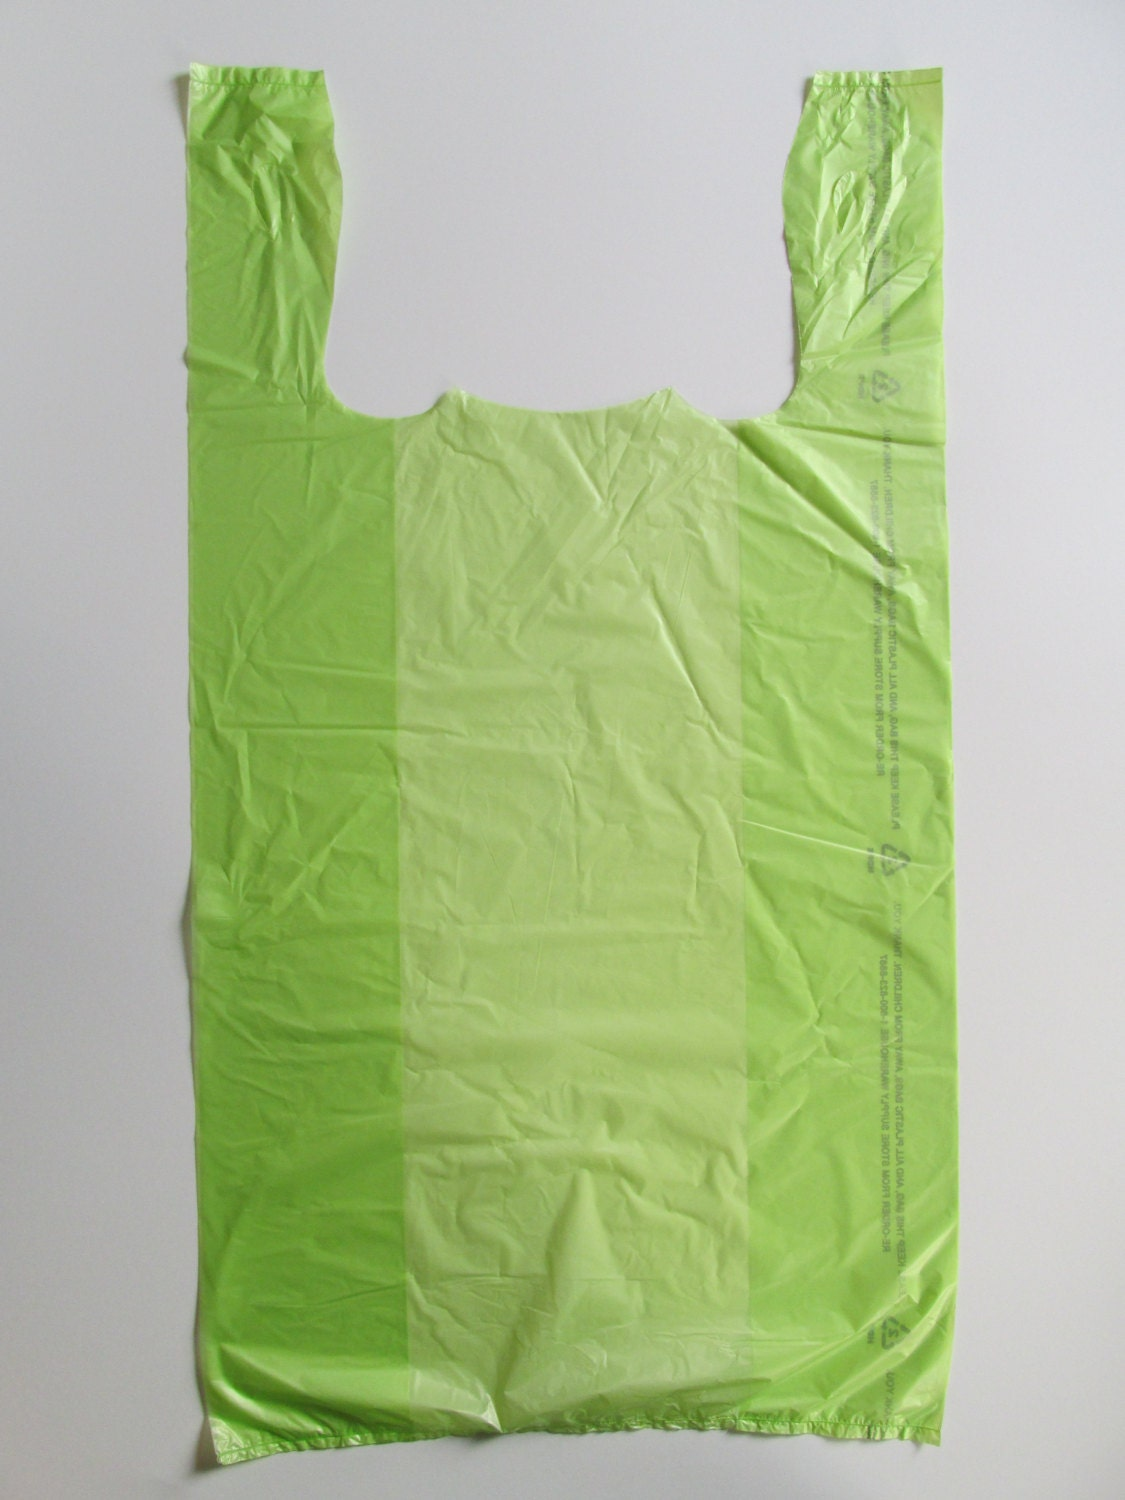 100 lime plastic medium t shirt bags with handles 11 for Plastic bags for t shirts